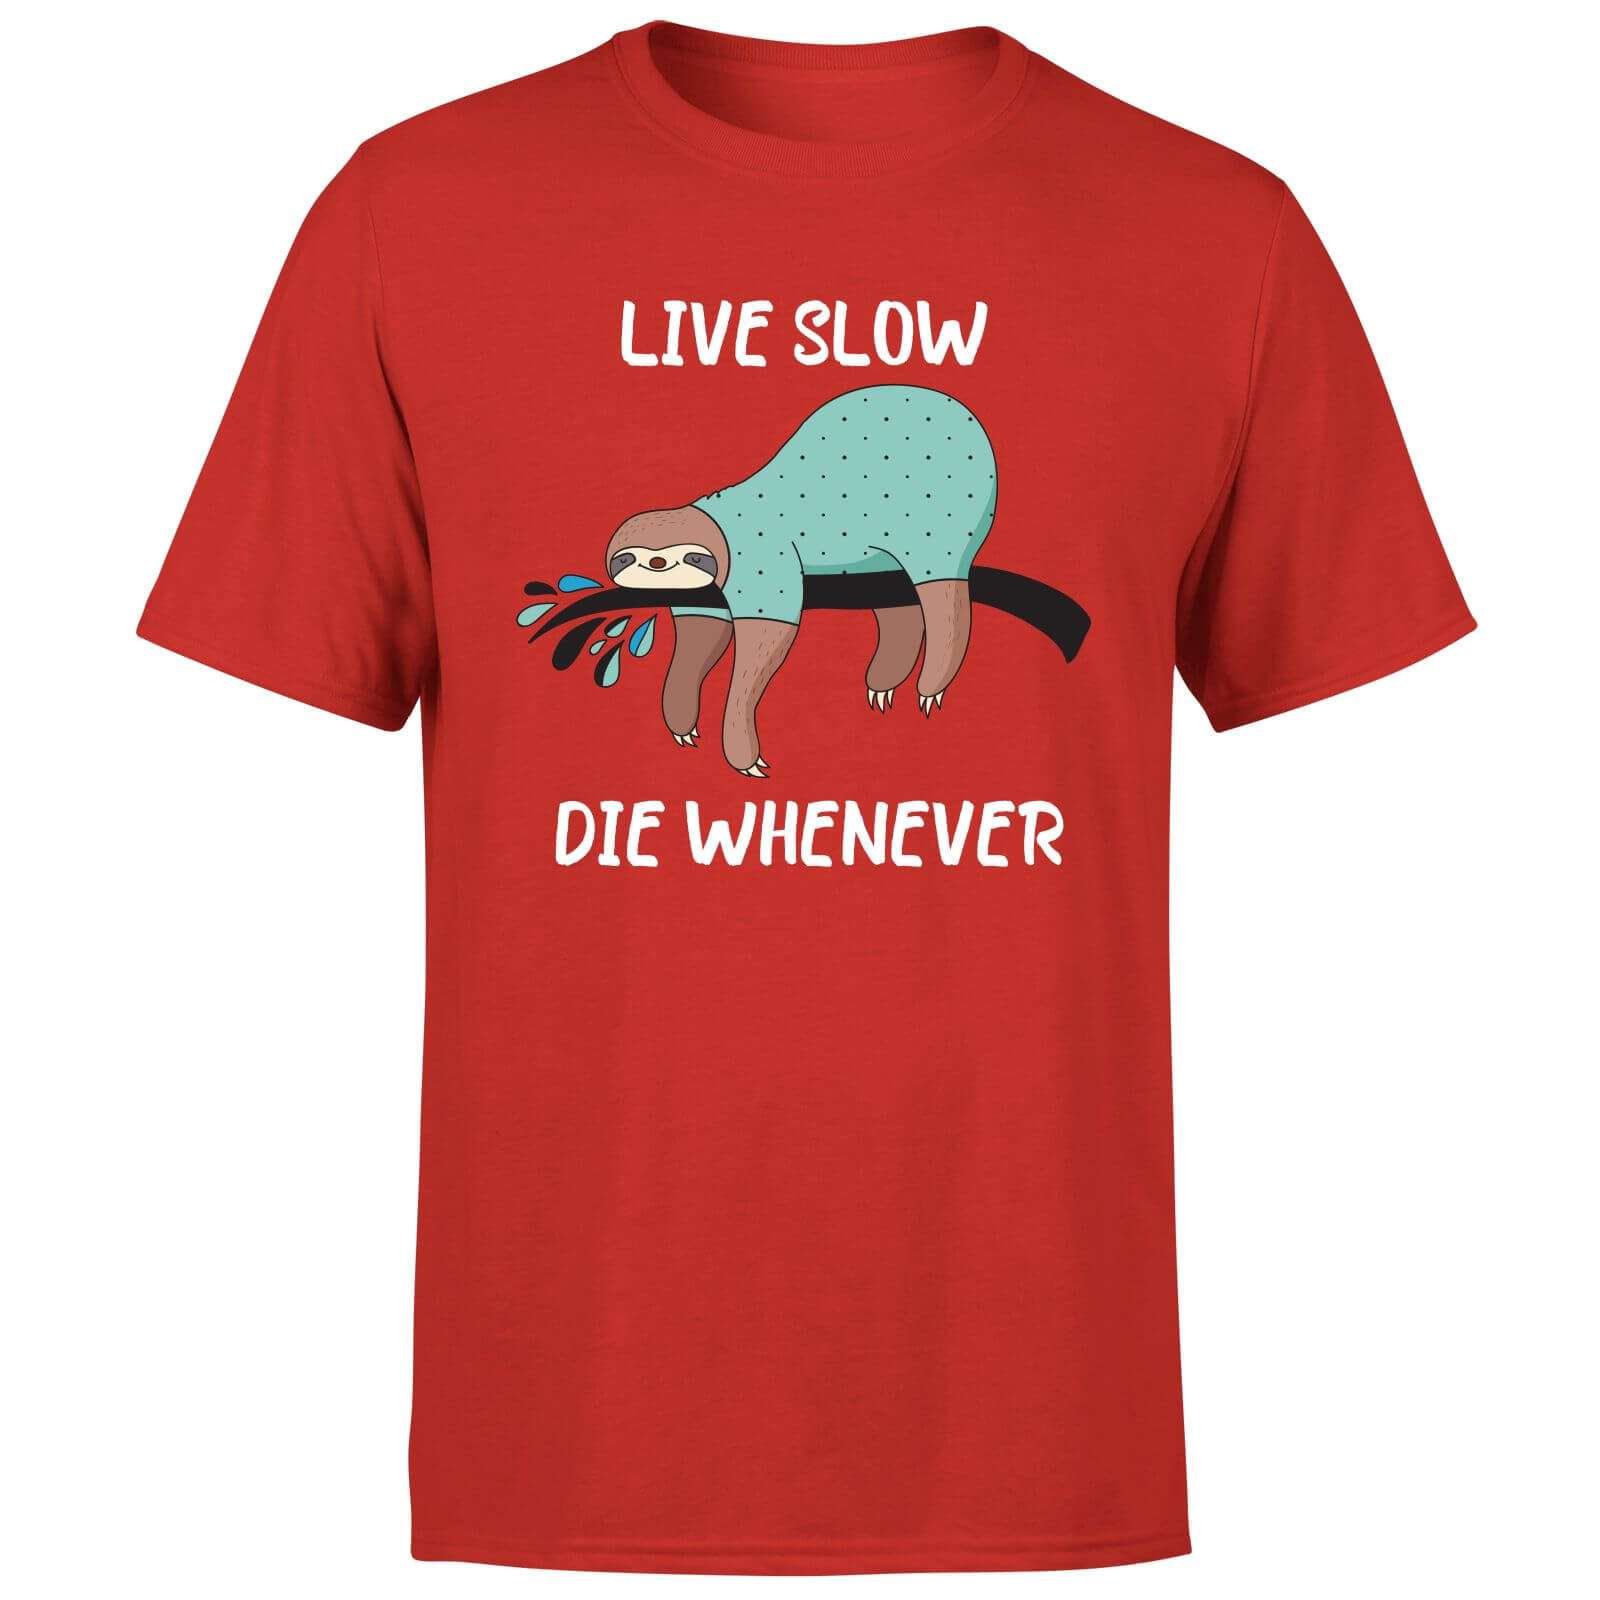 Live Slow Die WHenever T-Shirt - Red